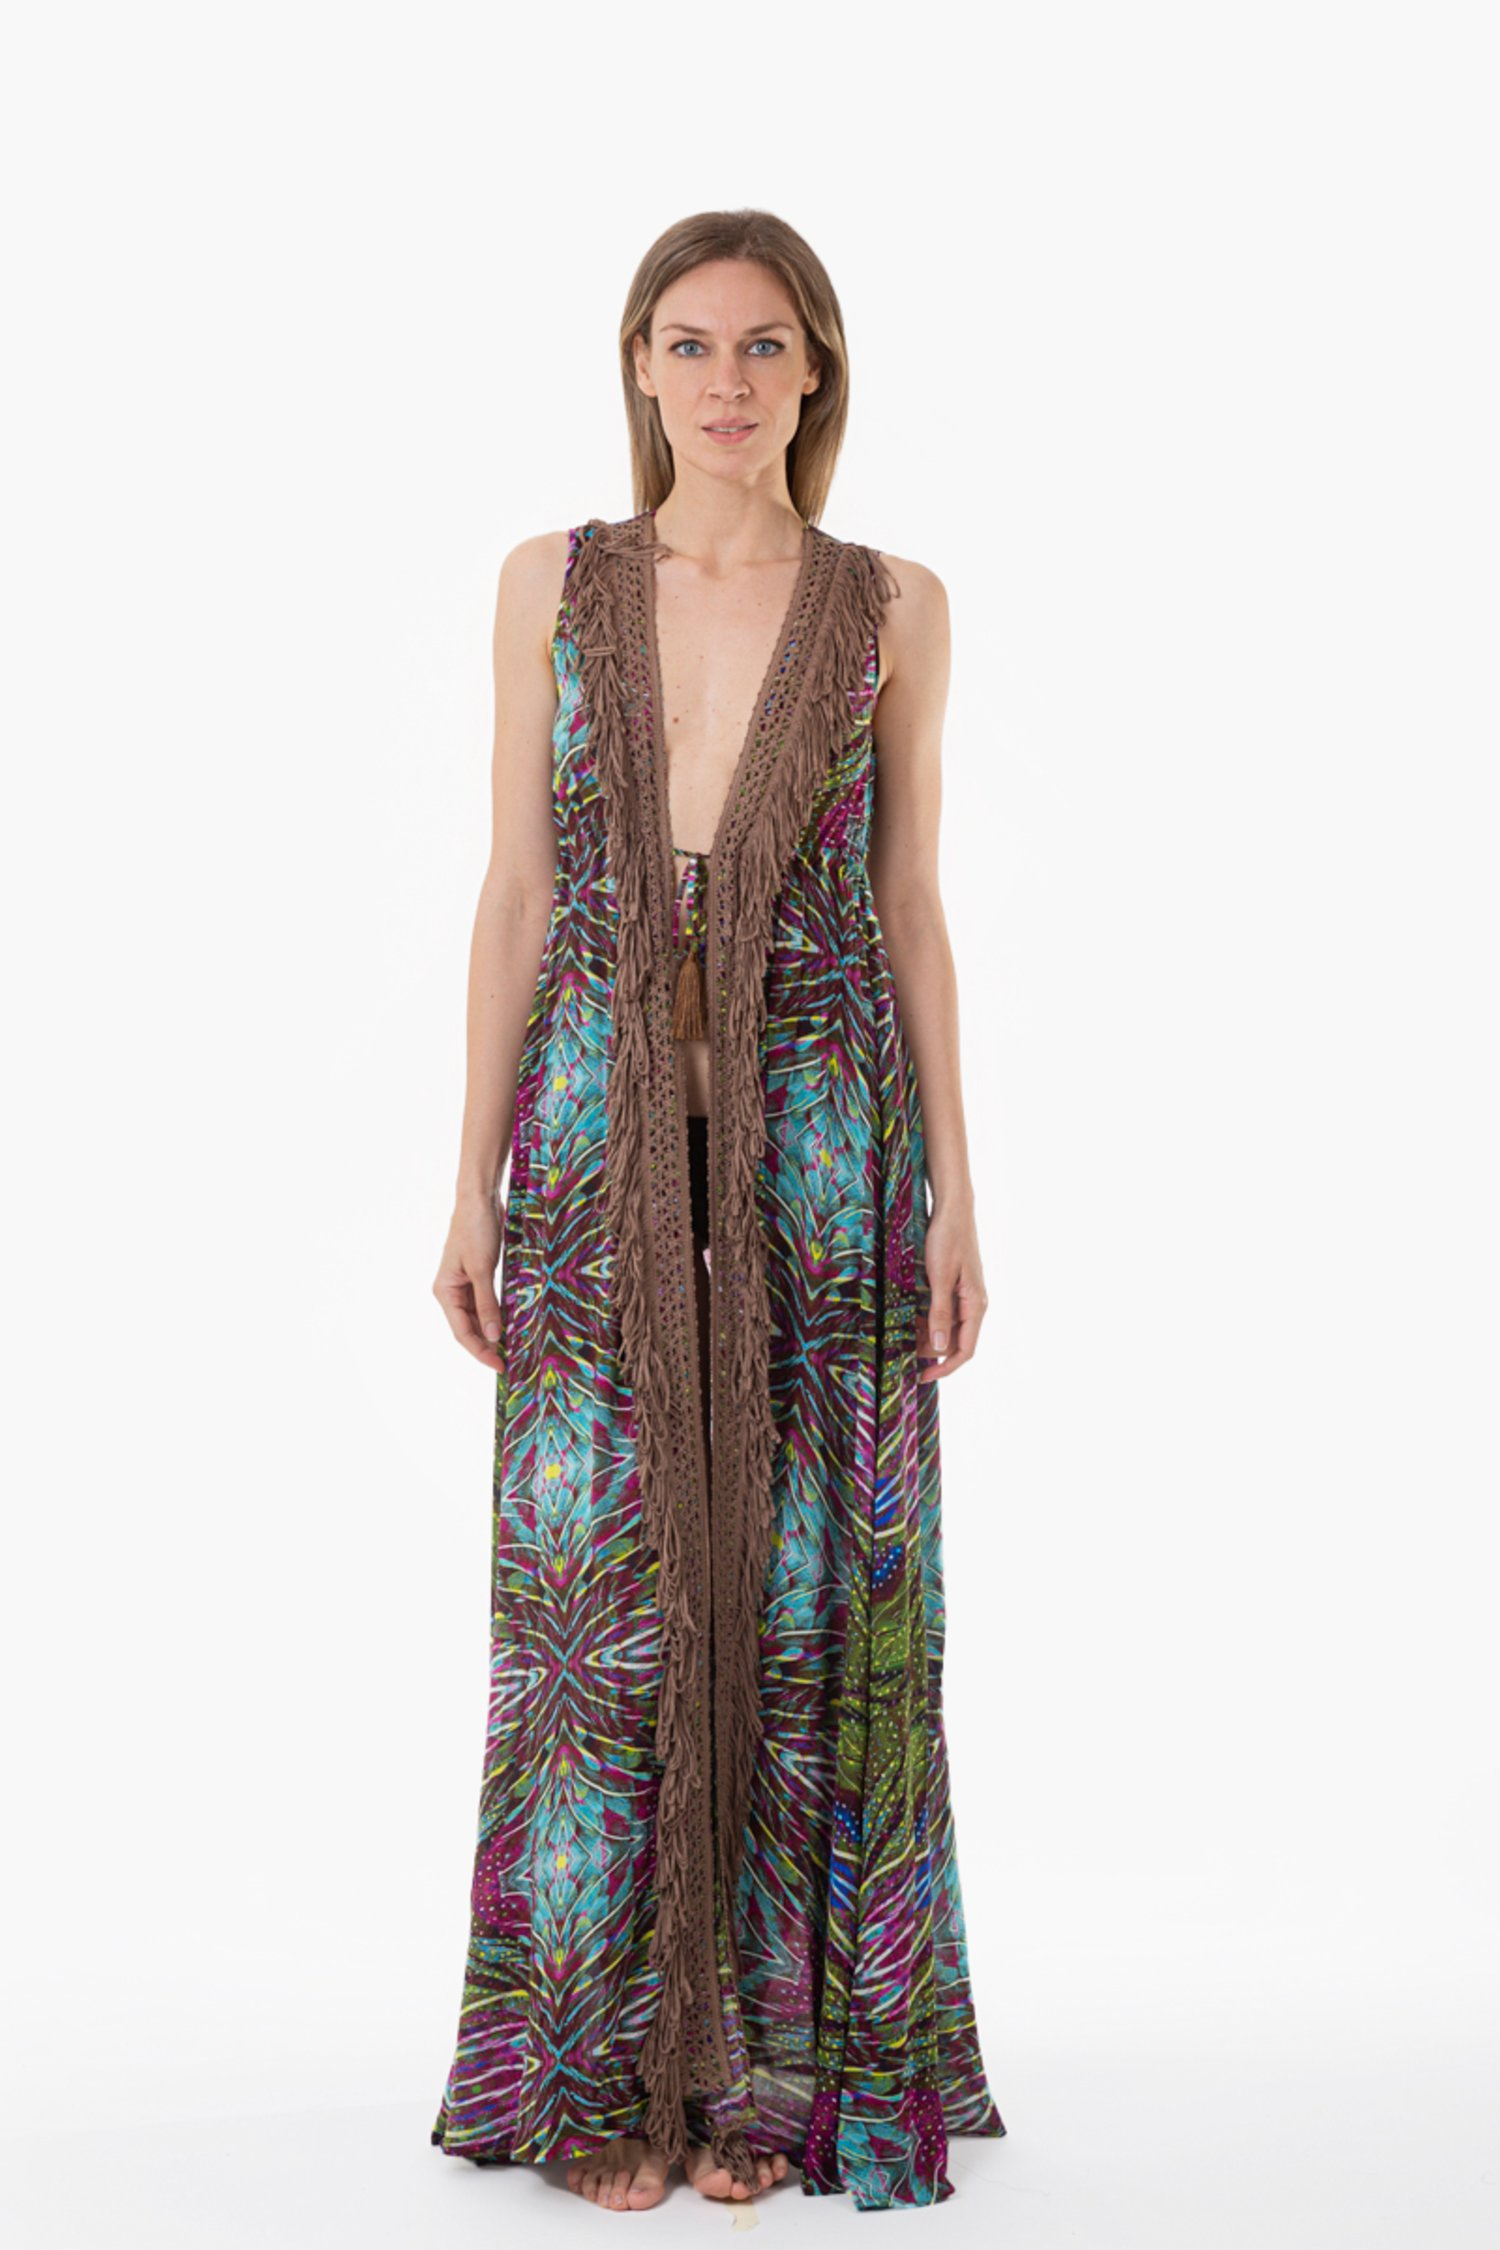 LONG DRESS WITH FRINGES - Plumage Light Blue